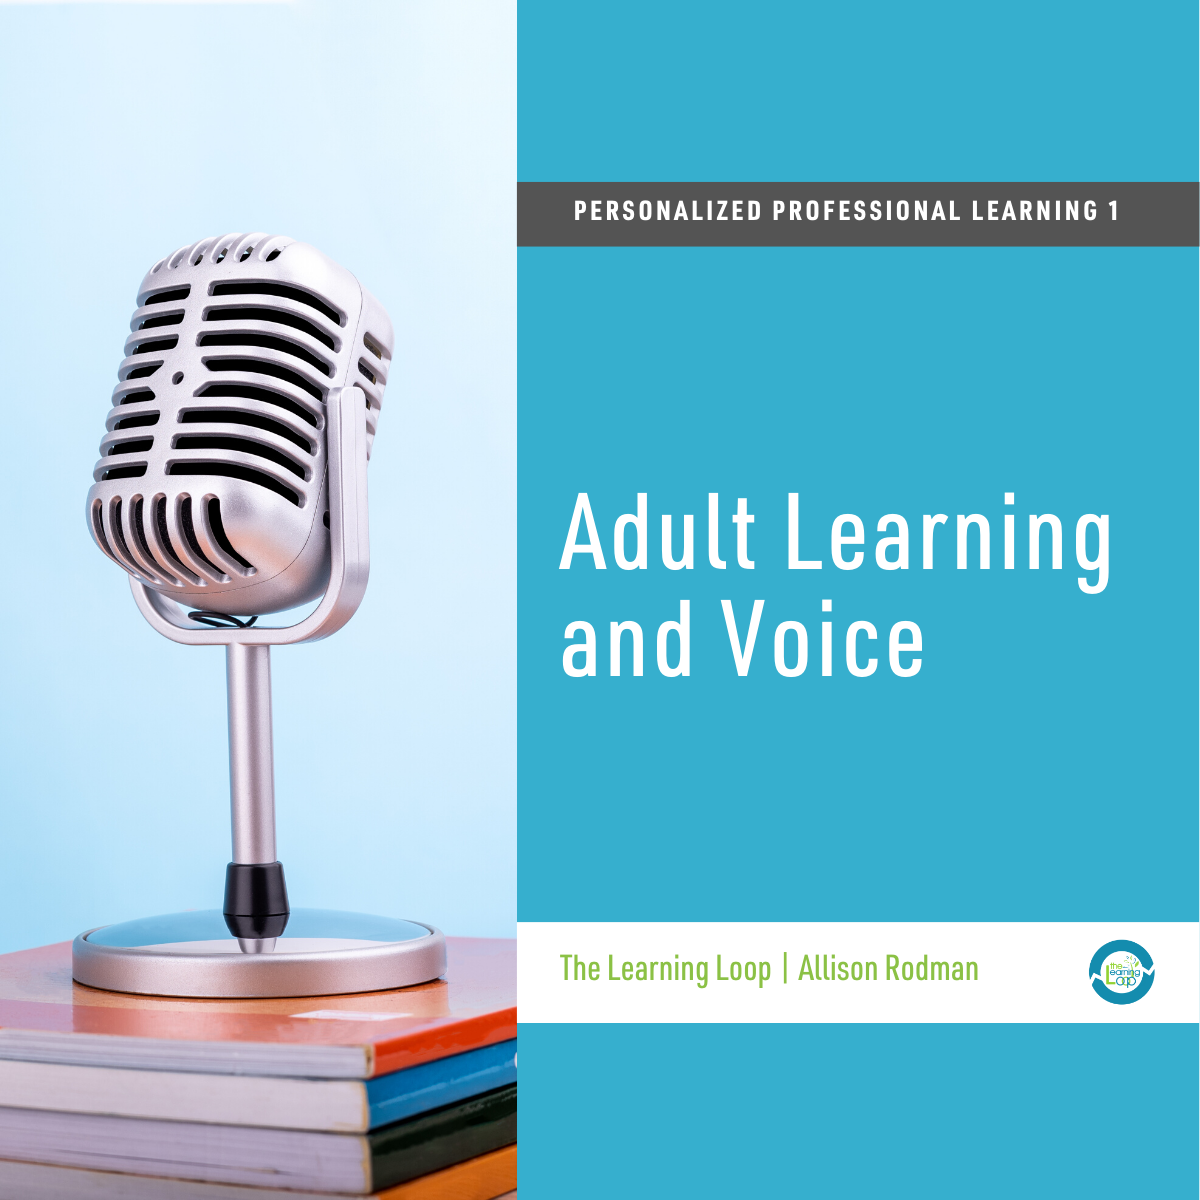 Adult Learning and Voice